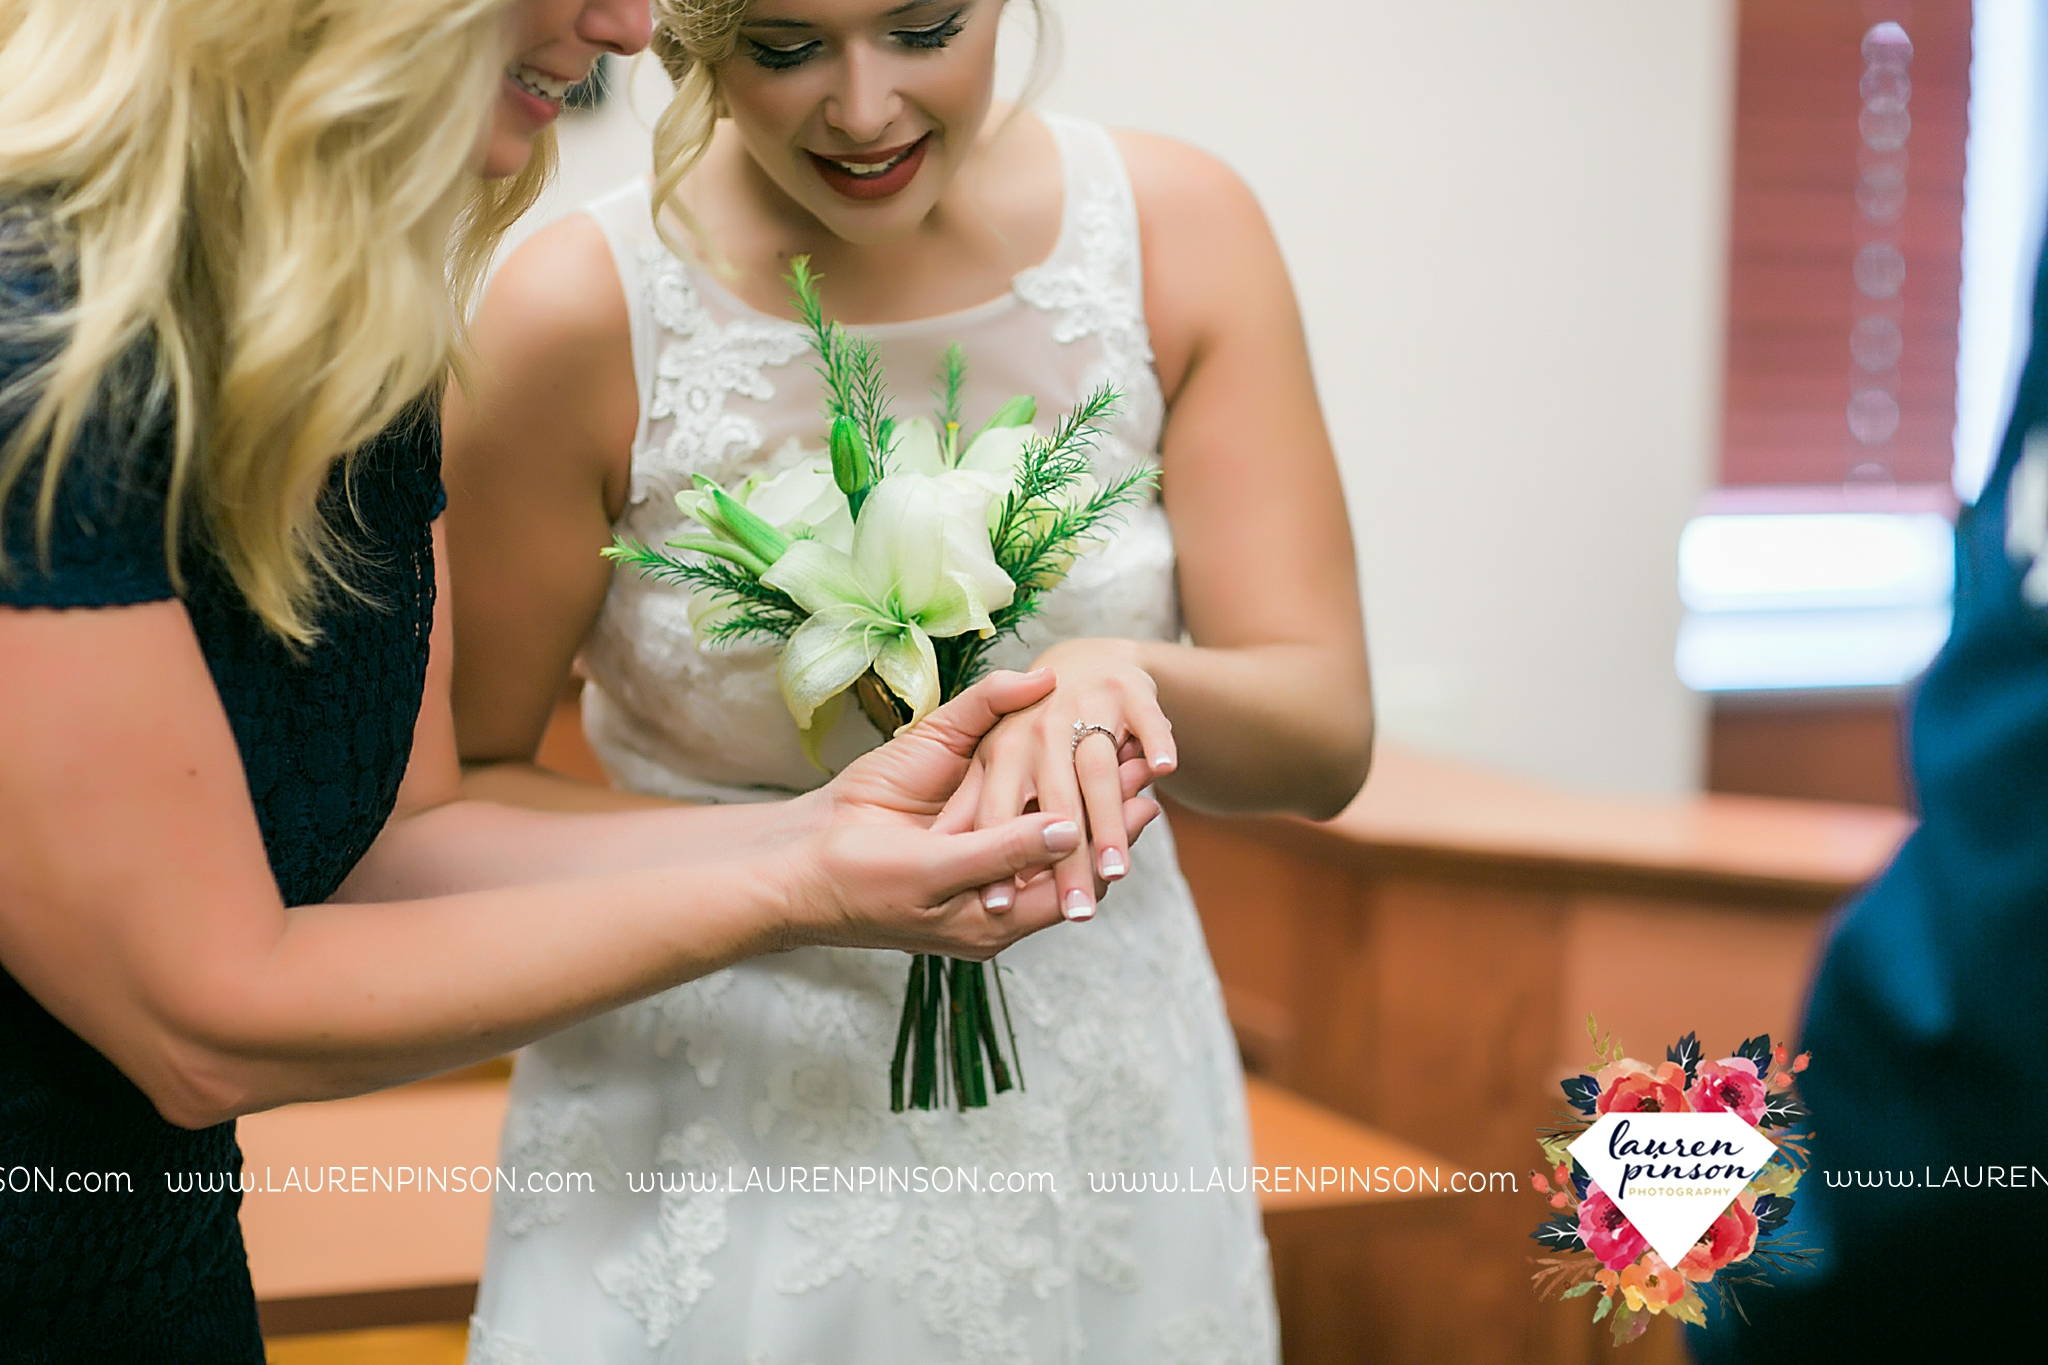 sheppard-afb-wichita-falls-texas-elopement-courthouse-wedding-photographer-justice-of-the-peace-judge-little-ceremony_3277.jpg